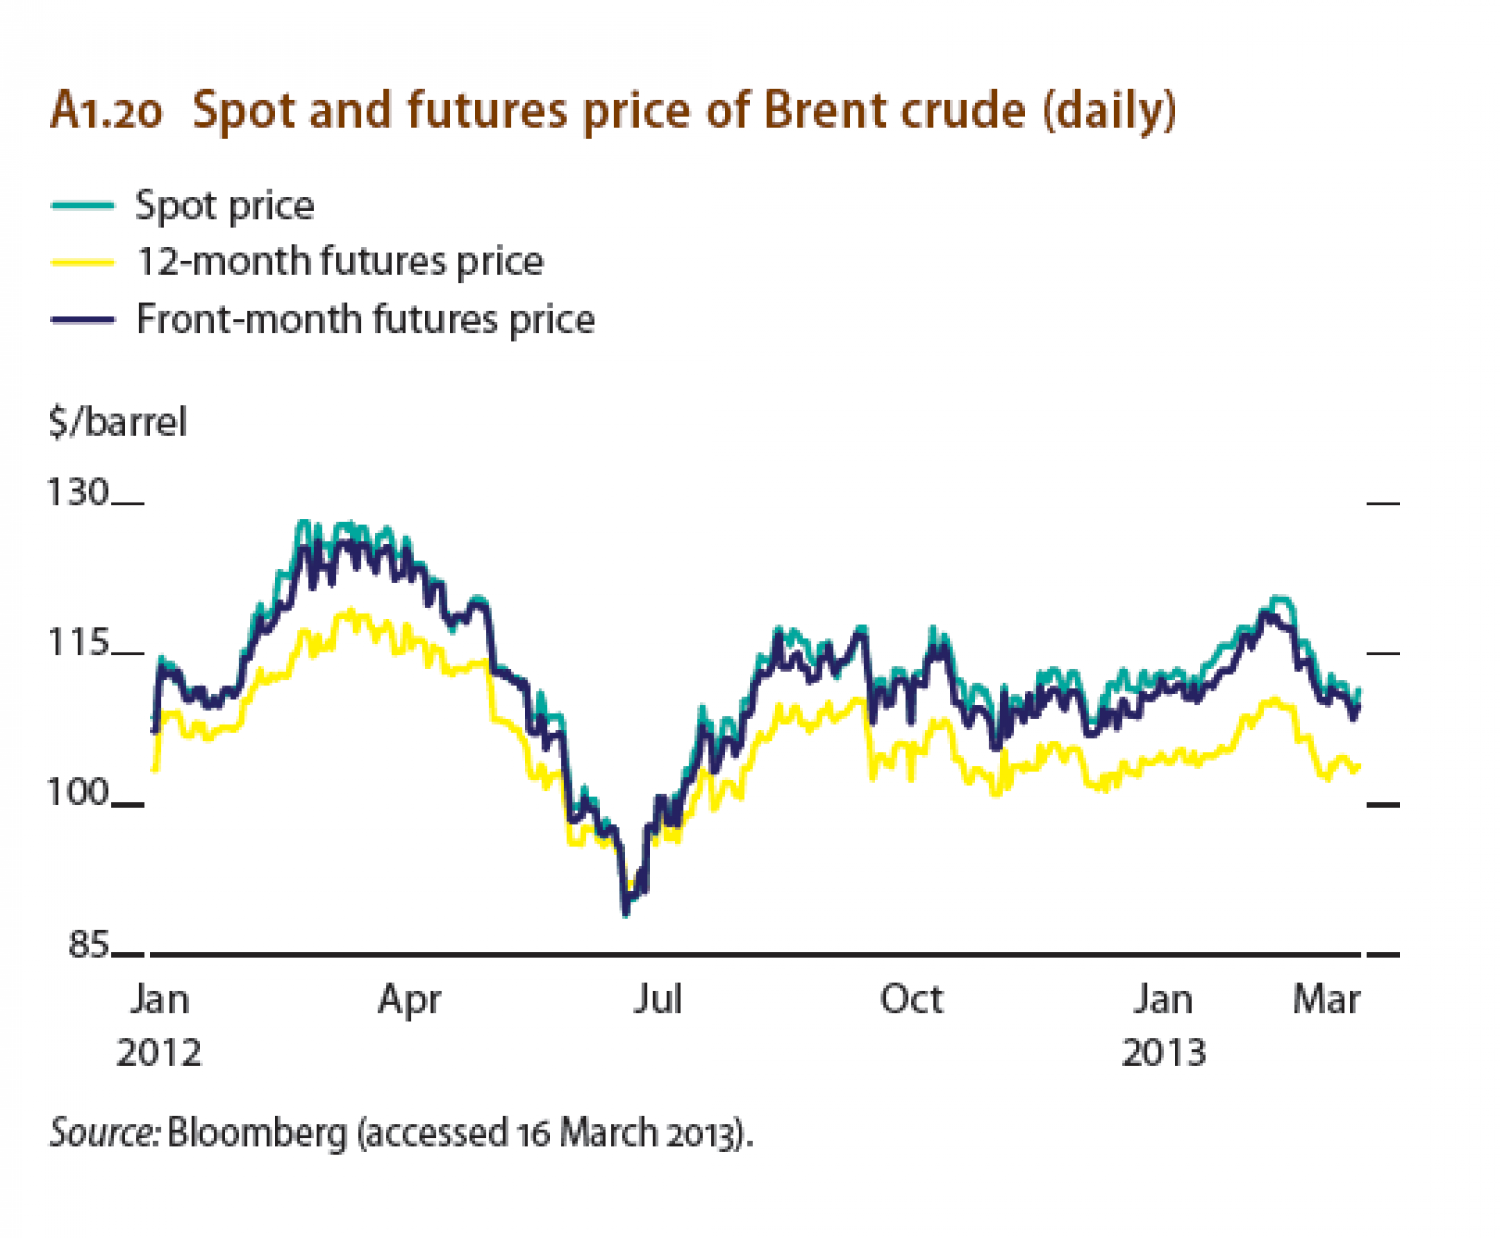 Spot and futures price of Brent crude (daily) Infographic